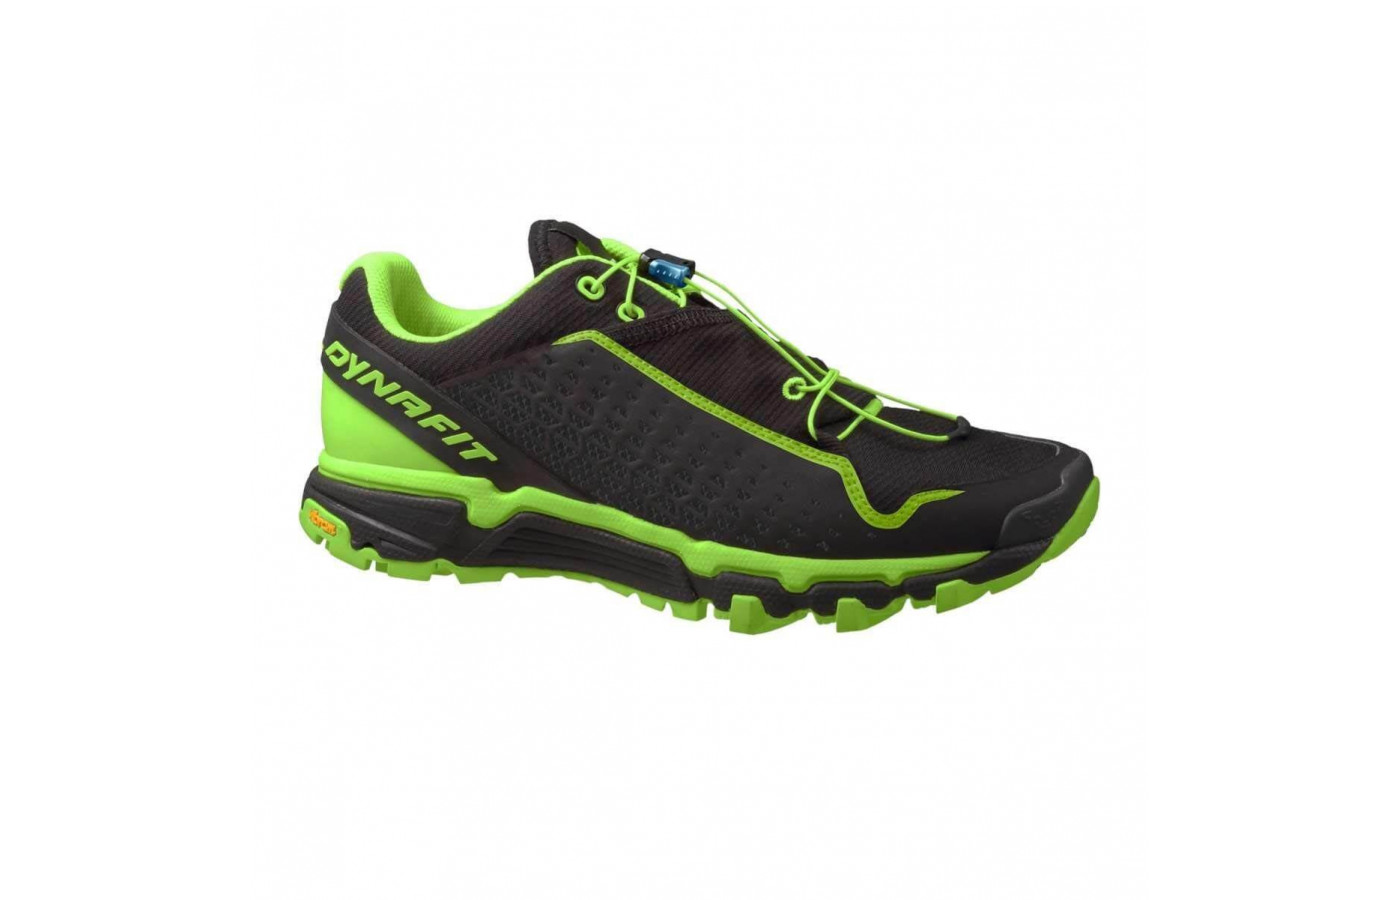 The Dynafit Ultra Pro comes in the same color options for men and women